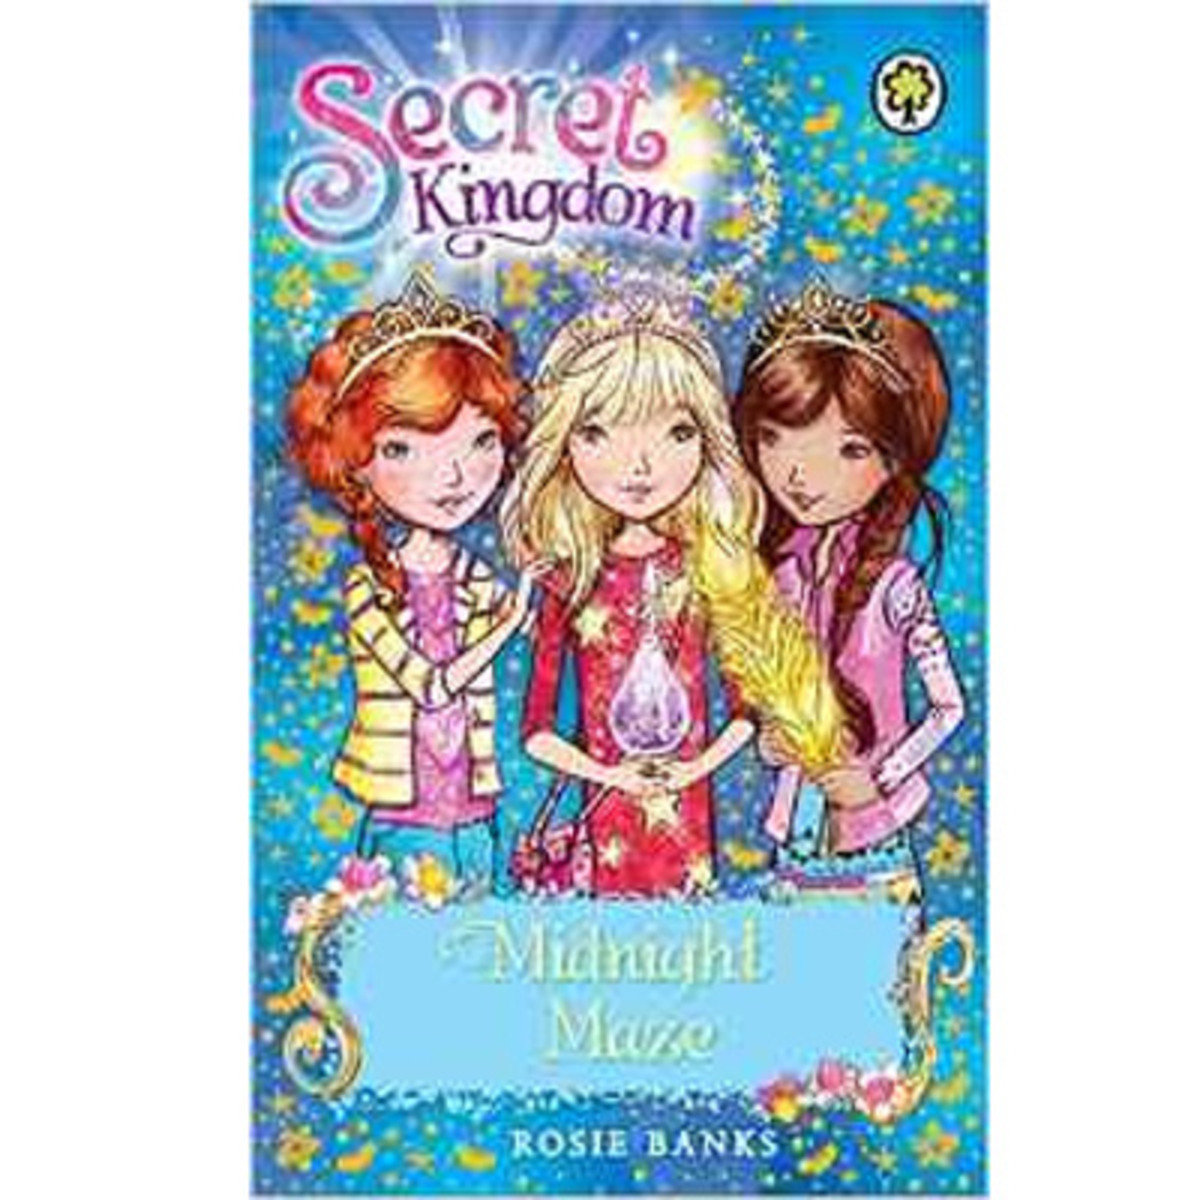 SECRET KINGDOM #12 MIDNIGHT MAZE 9781408323816